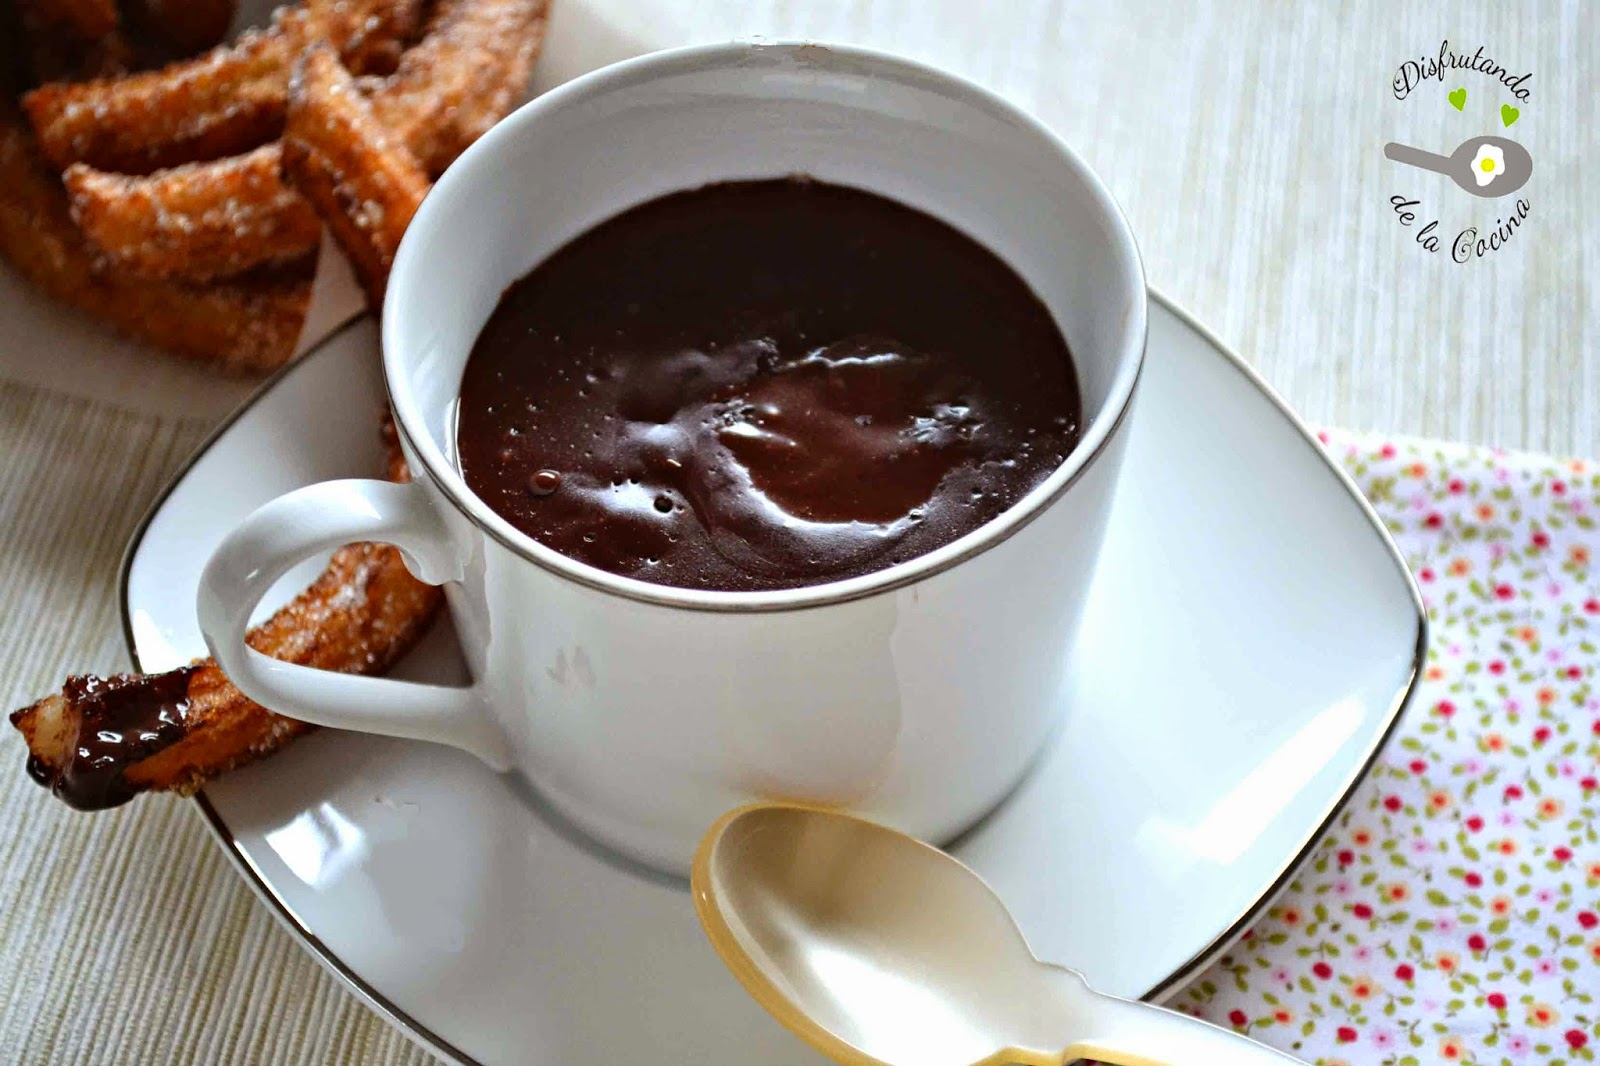 CHOCOLATE A LA TAZA O CHOCOLATE CALIENTE